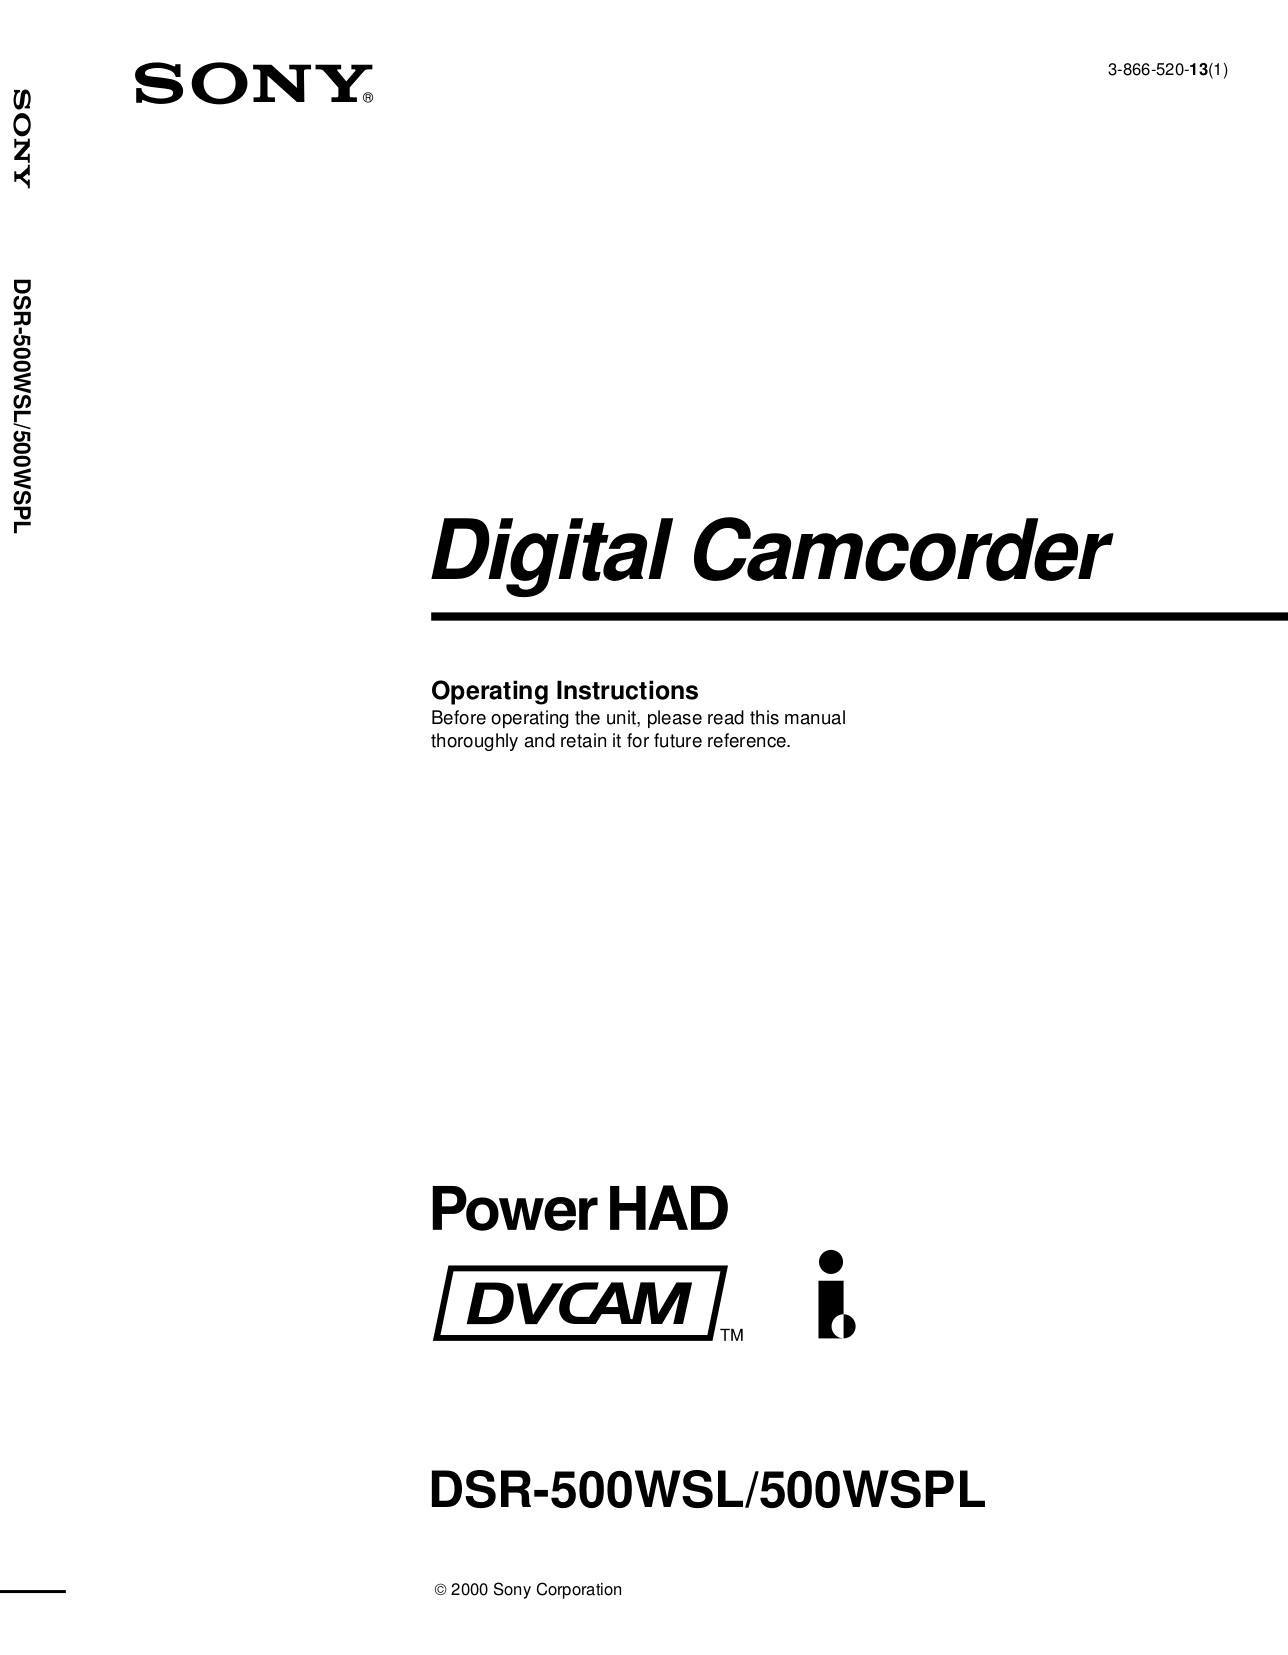 Download free pdf for Sony DSR-1500A Camcorders manual